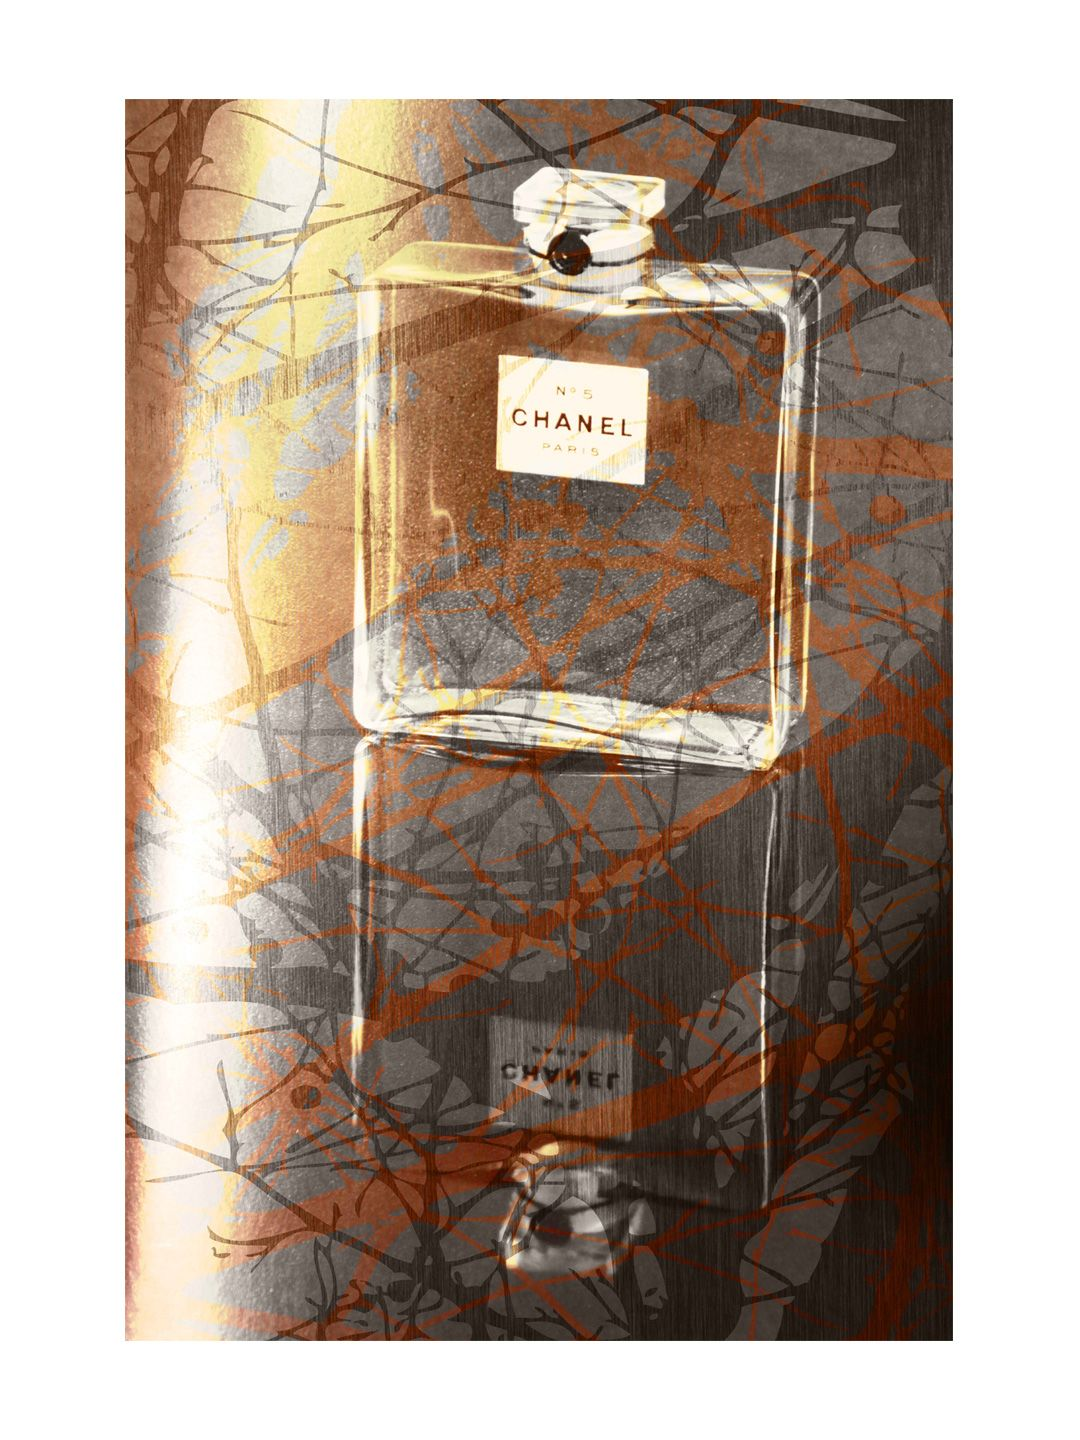 Woodsy Scent by Marmont Hill at Gilt www.marmonthill.com. Canvas artwork of Chanel perfume bottle